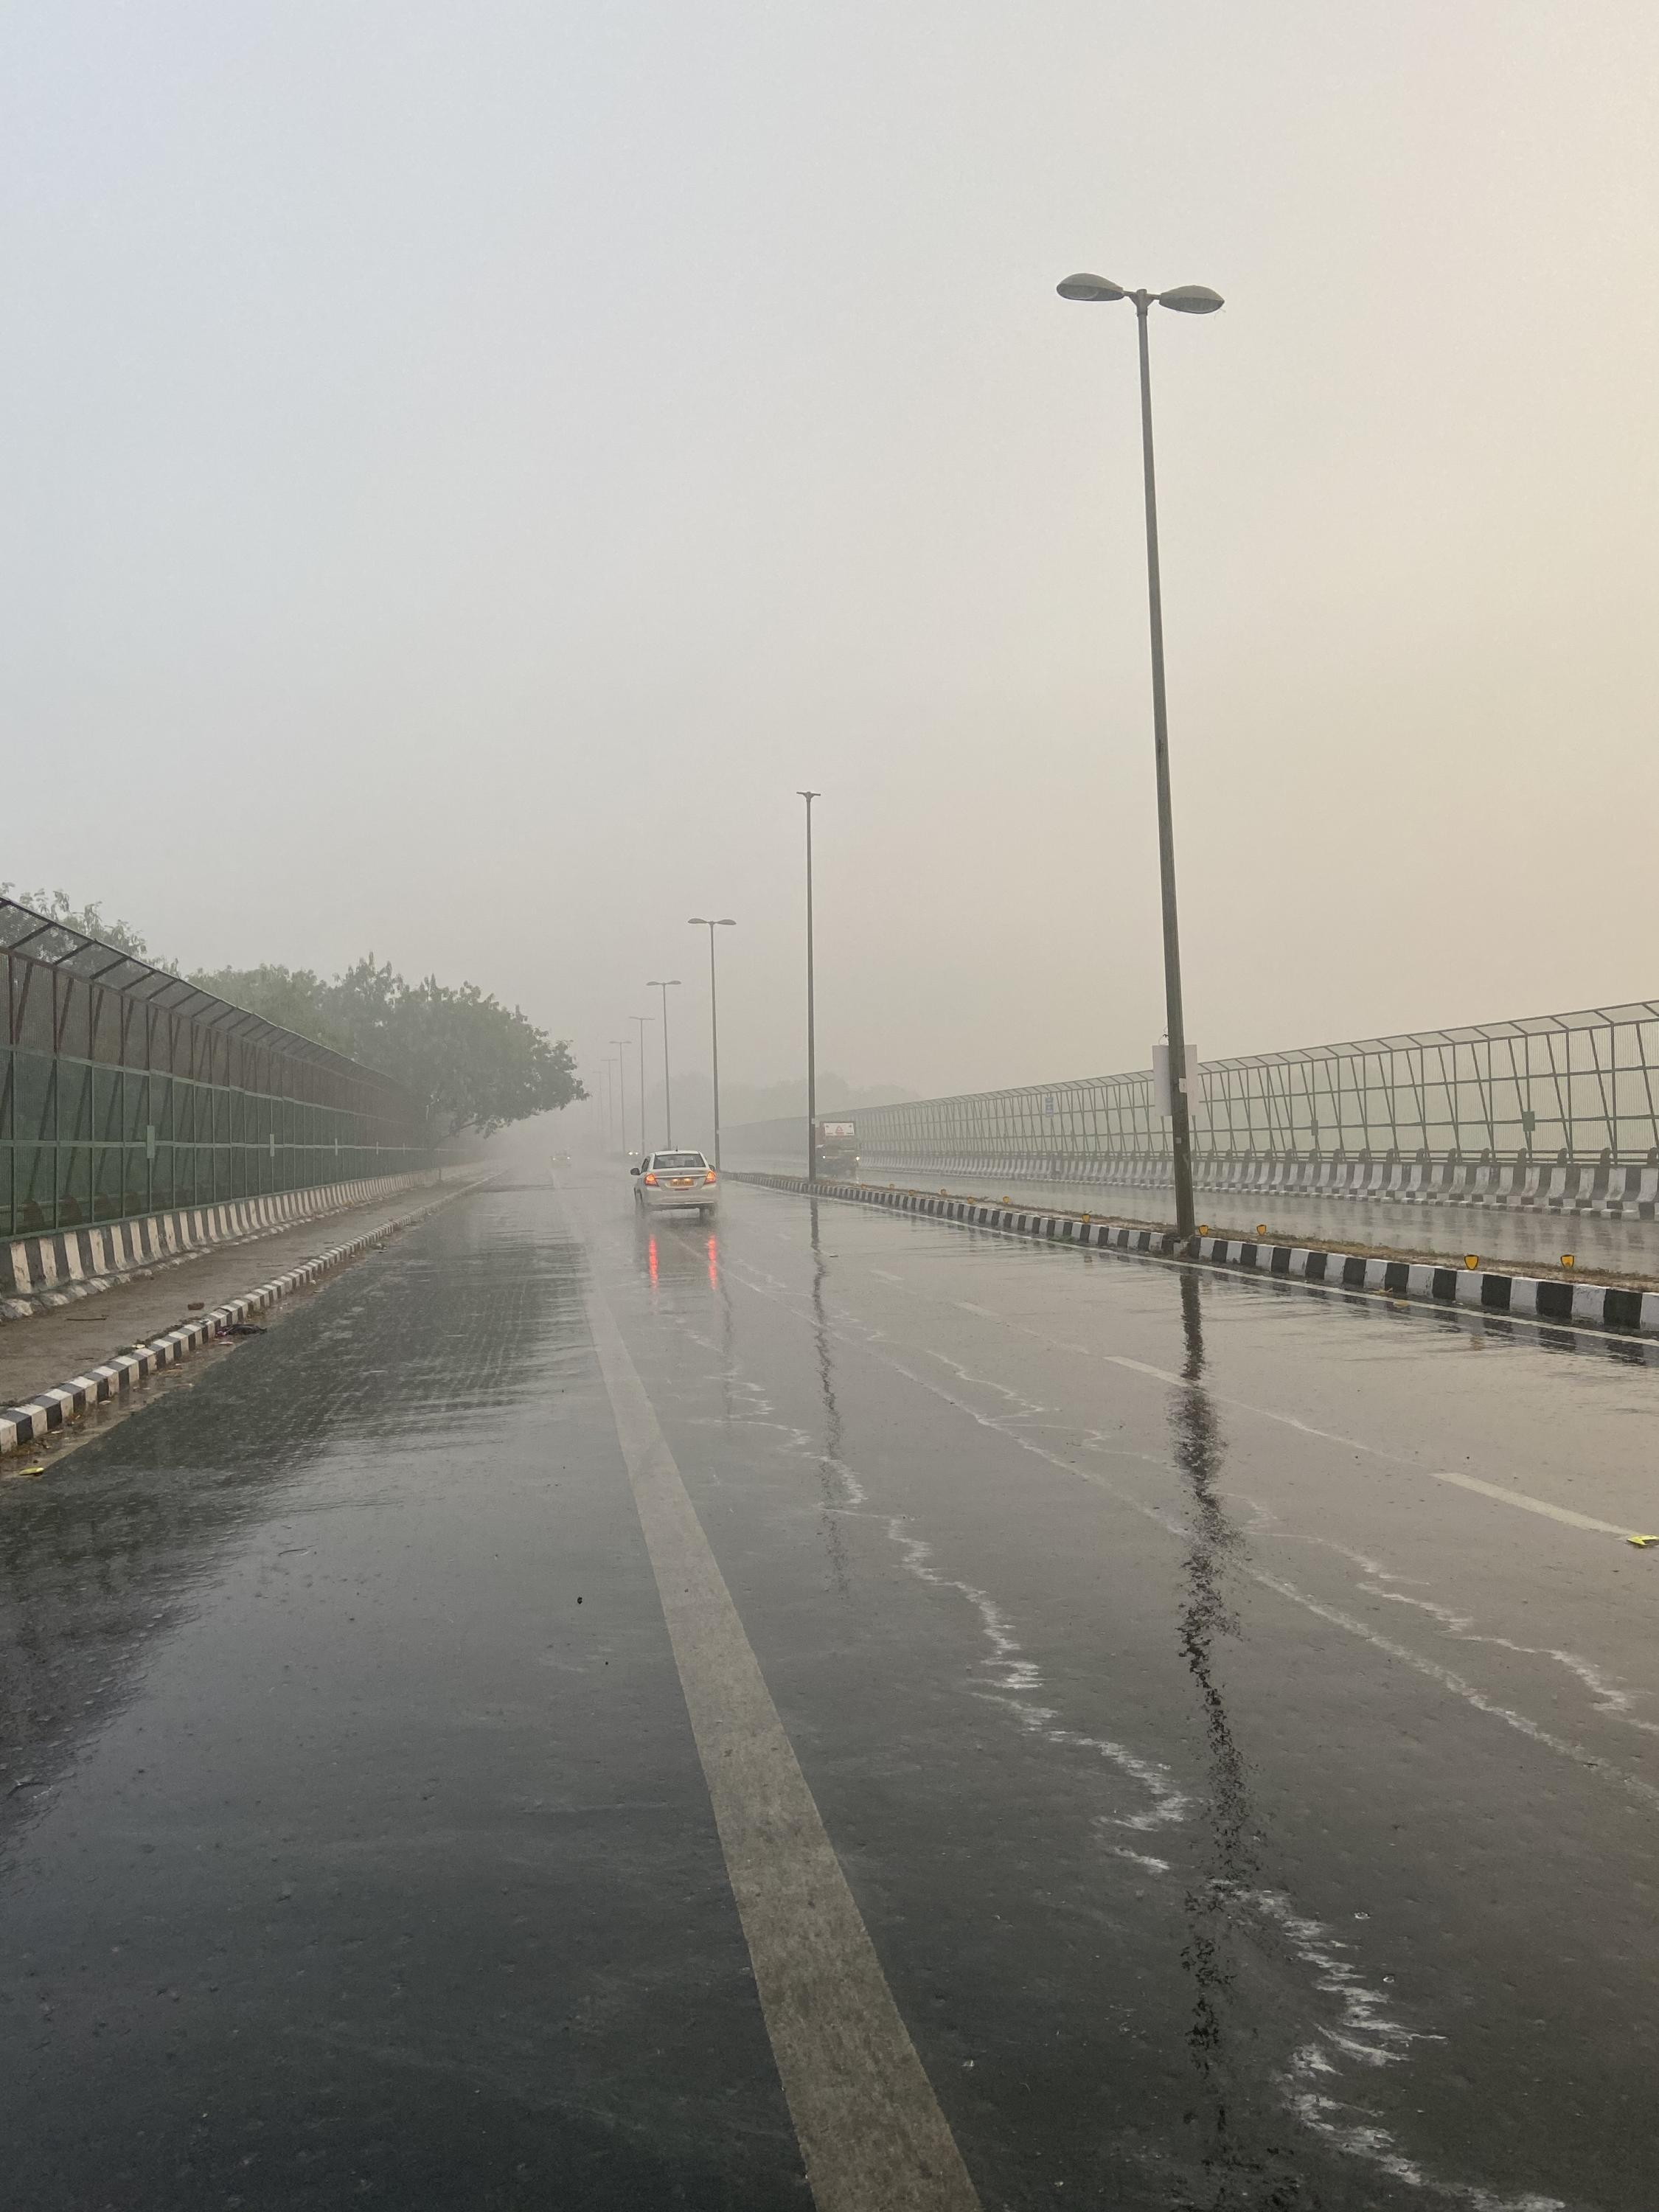 Poor visibility has caused problems for motorists in Delhi.